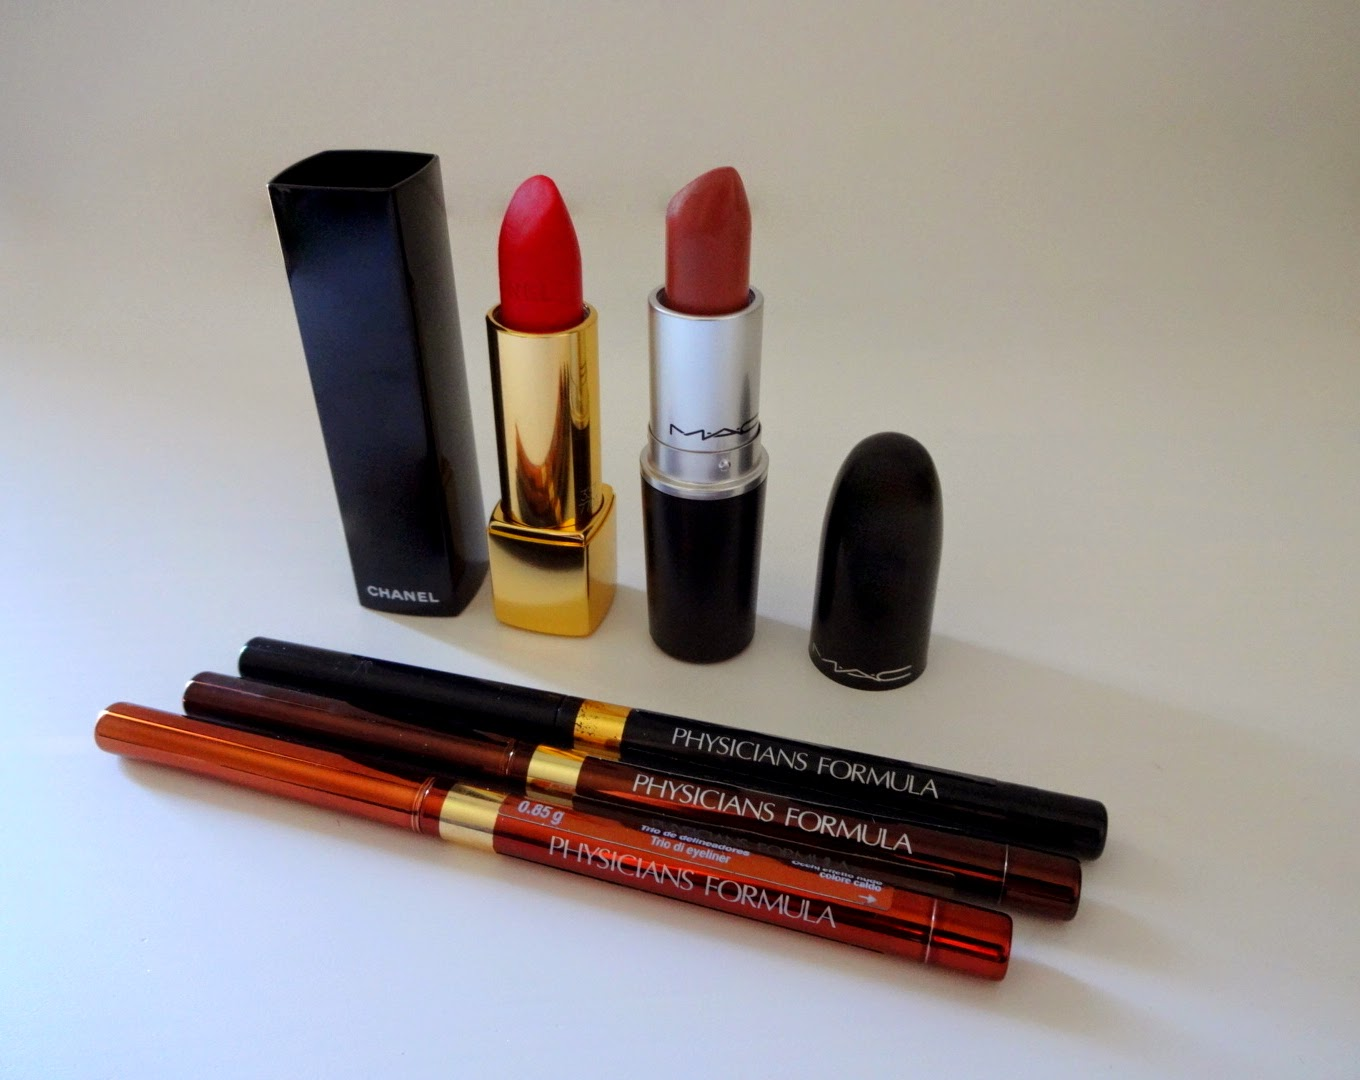 make up, trucco, rossetto rosso, rossetto nude, mac velvet teddy, chanel rouge allure velvet la flamboyante, chanel make up christmas collection 2014, physician's formula